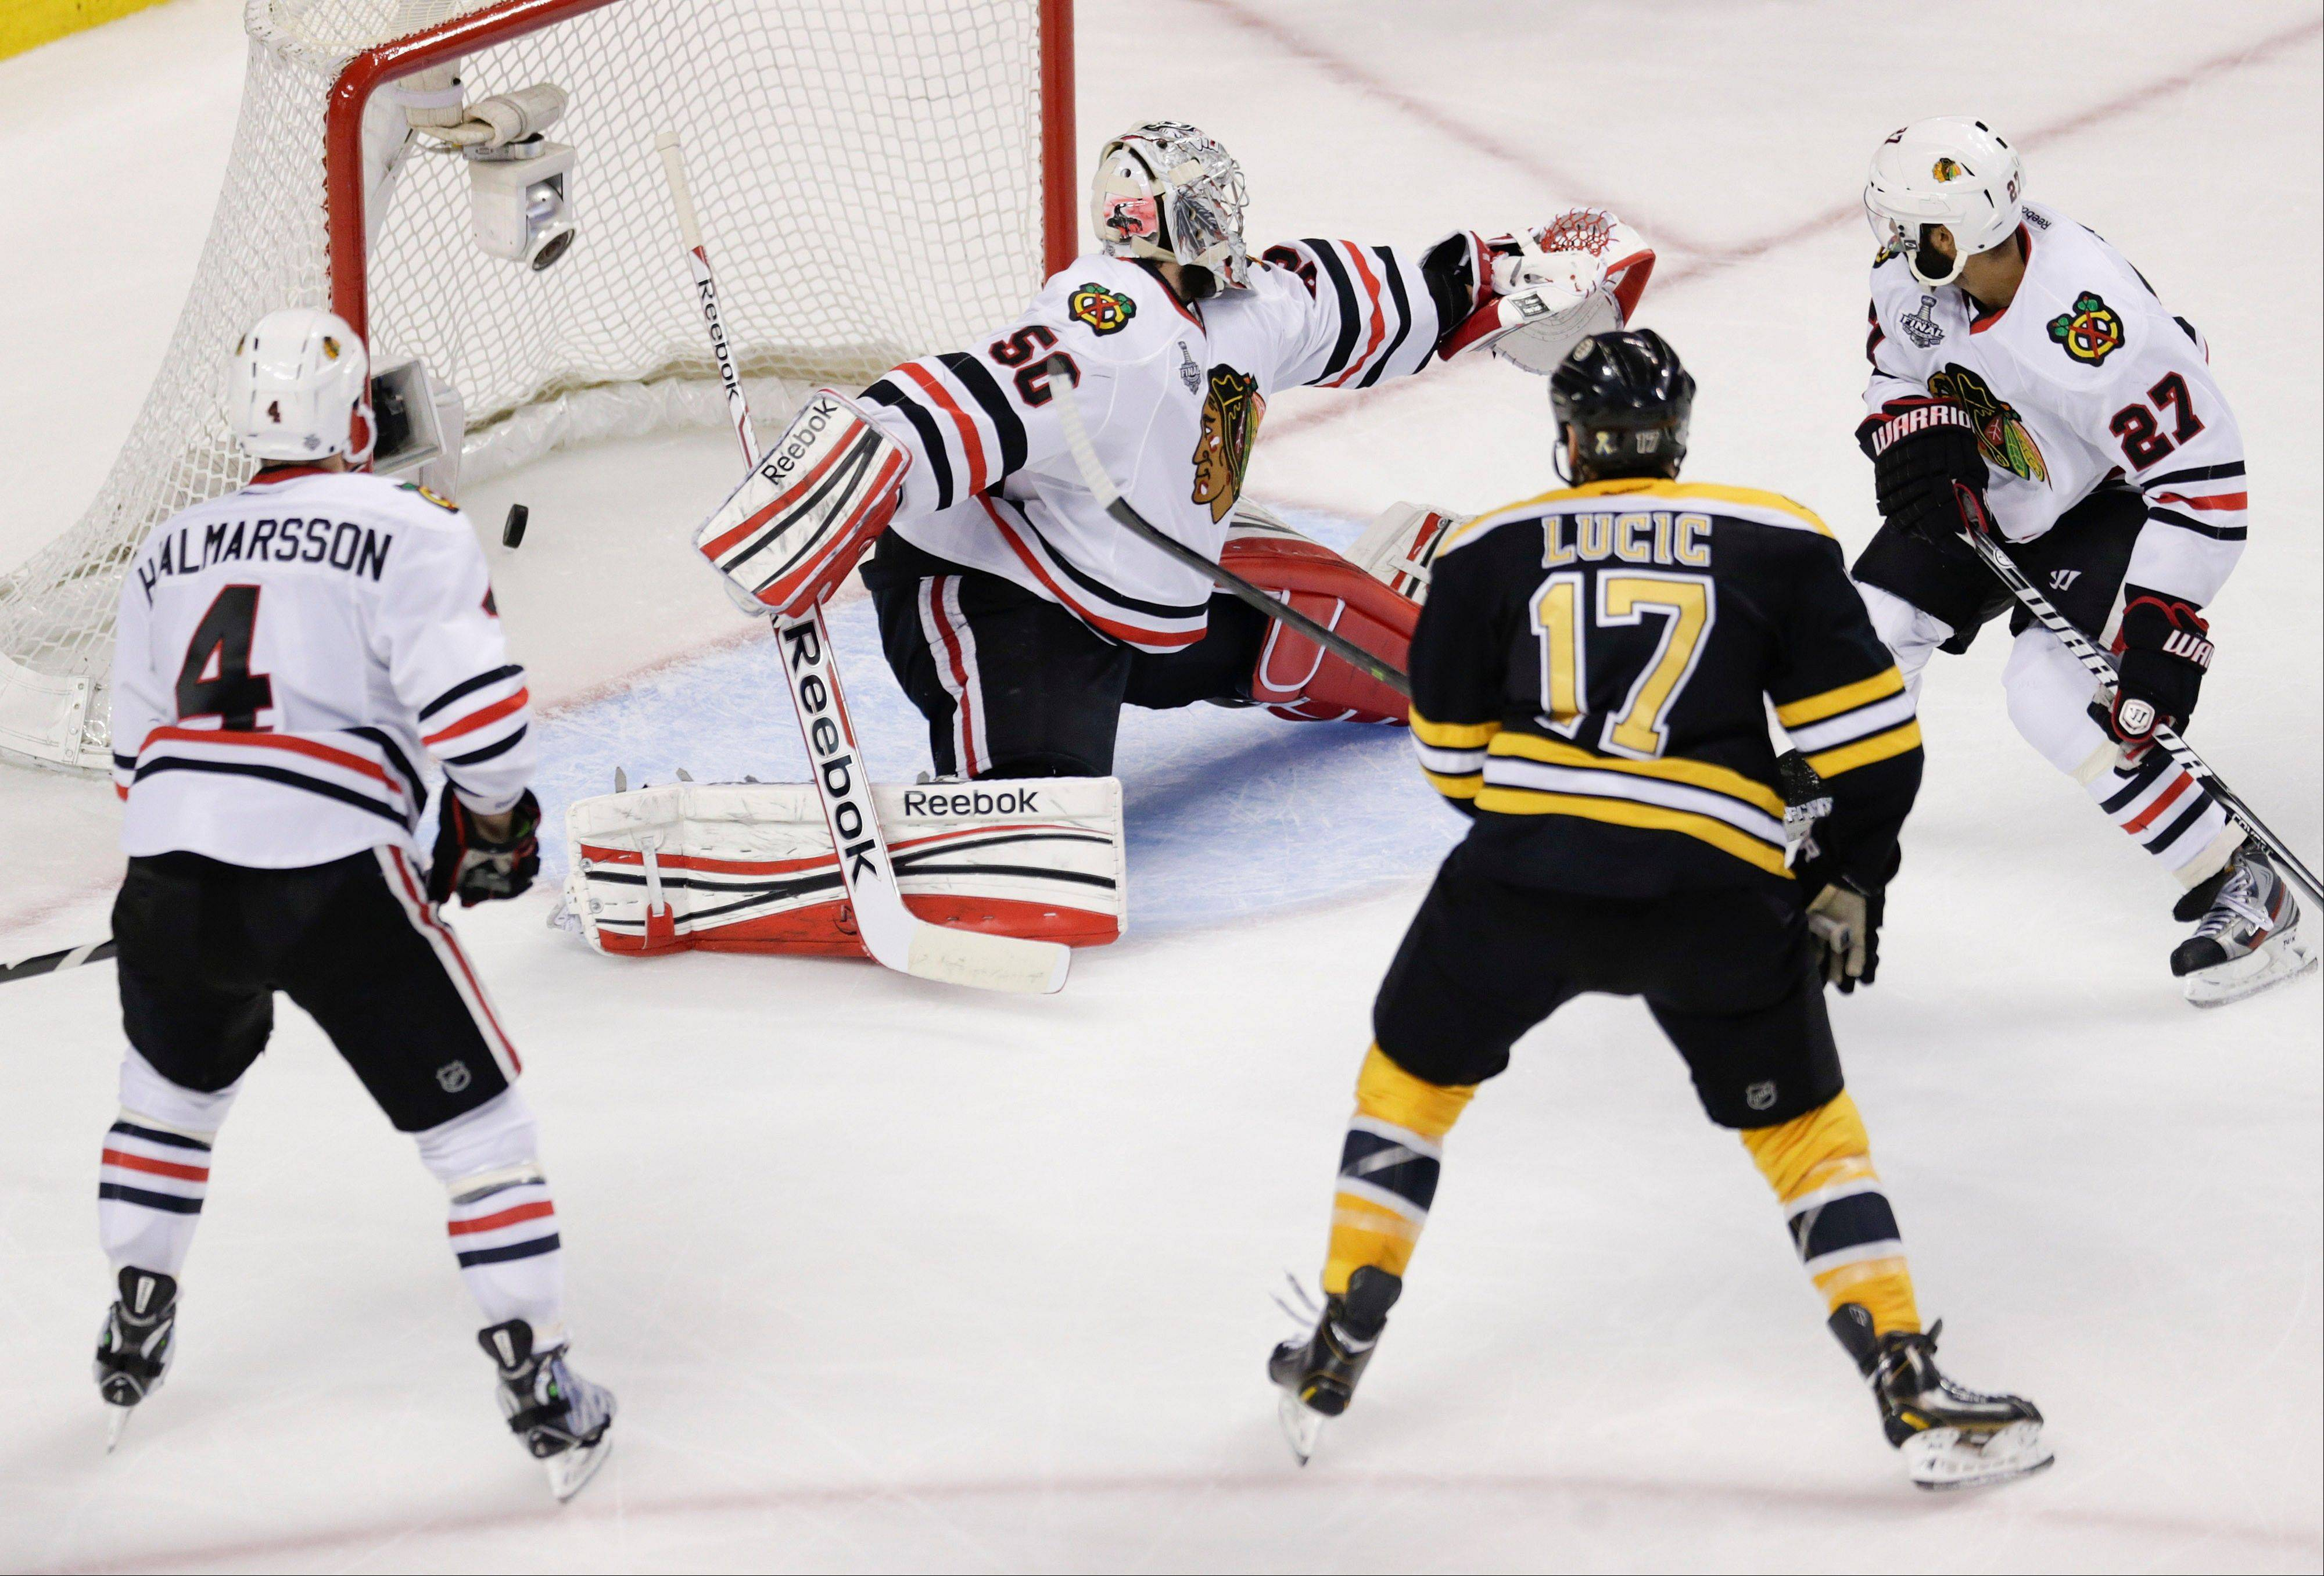 Boston Bruins left wing Milan Lucic (17) scores a goal against Chicago Blackhawks goalie Corey Crawford (50) as defenseman Johnny Oduya (27) and defenseman Niklas Hjalmarsson (4) look on during the second period in Game 4 of the NHL hockey Stanley Cup Finals.